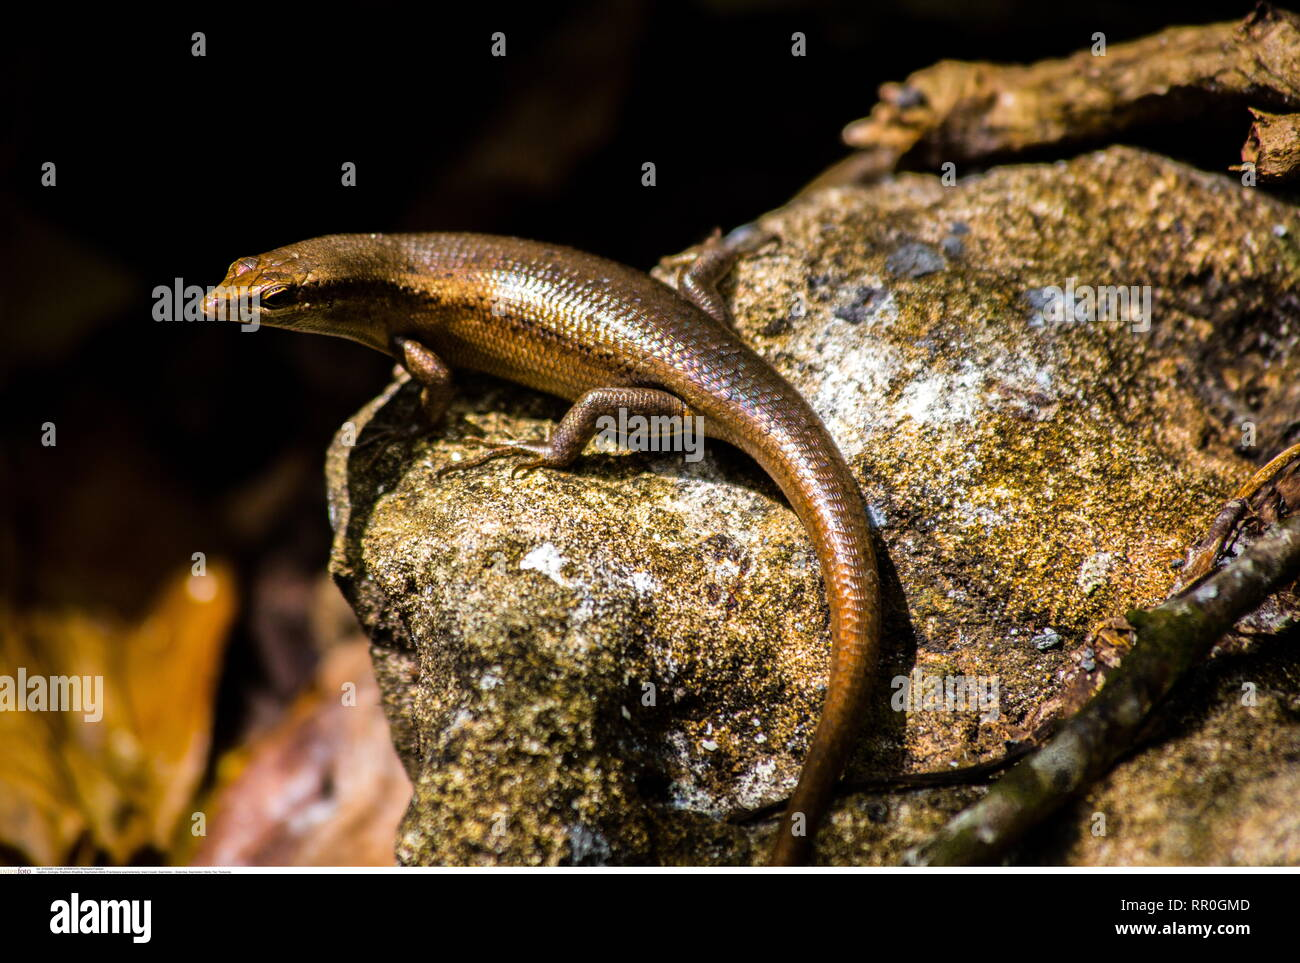 Eidechse, Seychellen / Skink, Tier, Tierkunde, Additional-Rights-Clearance-Info-Not-Available - Stock Image